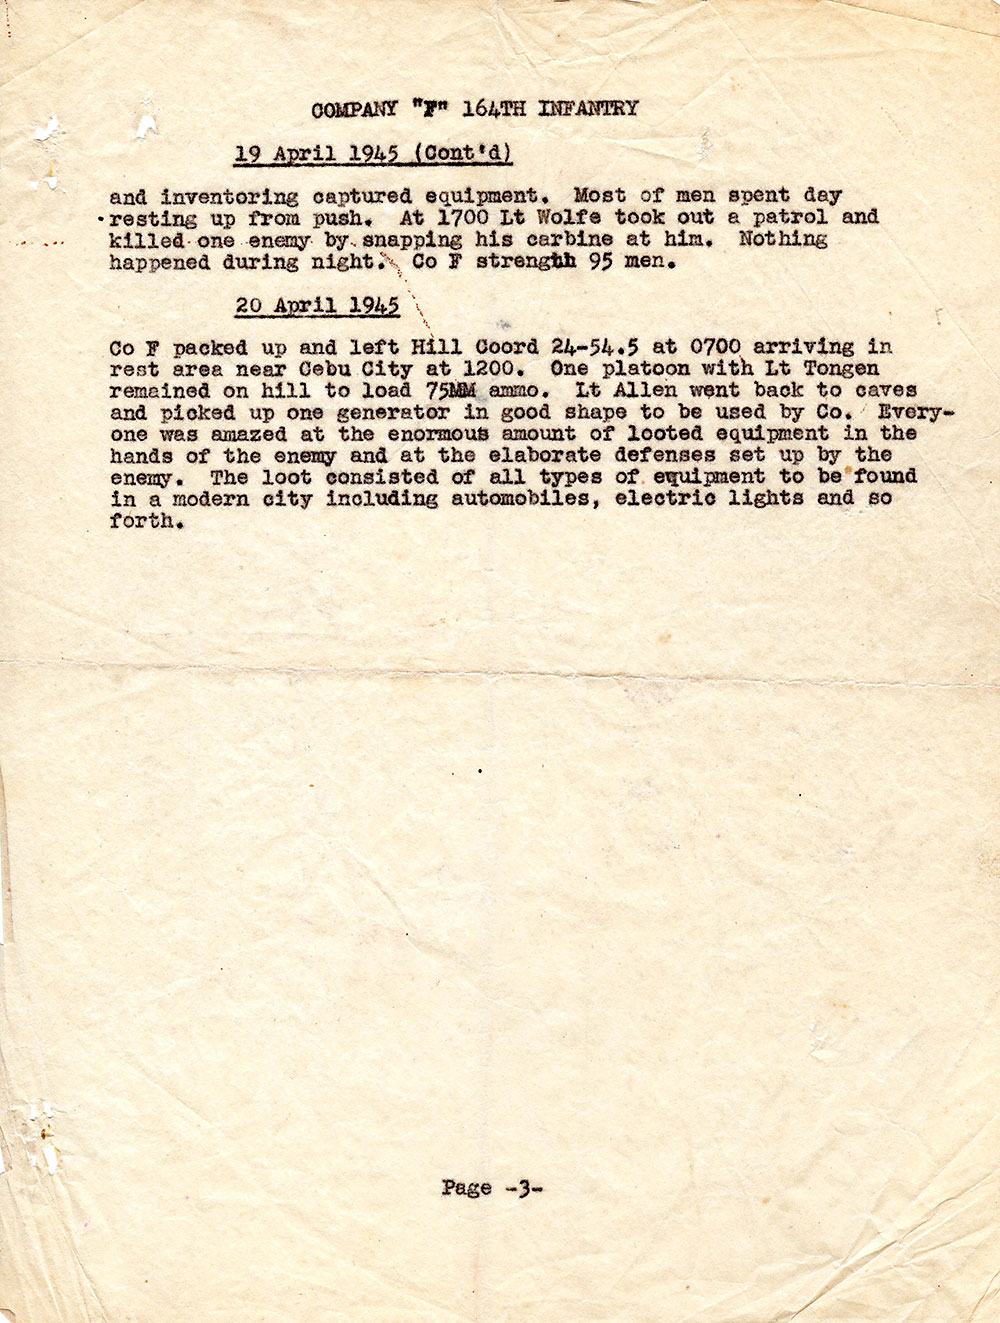 19450411---WWII-Morning-Report_Page_3